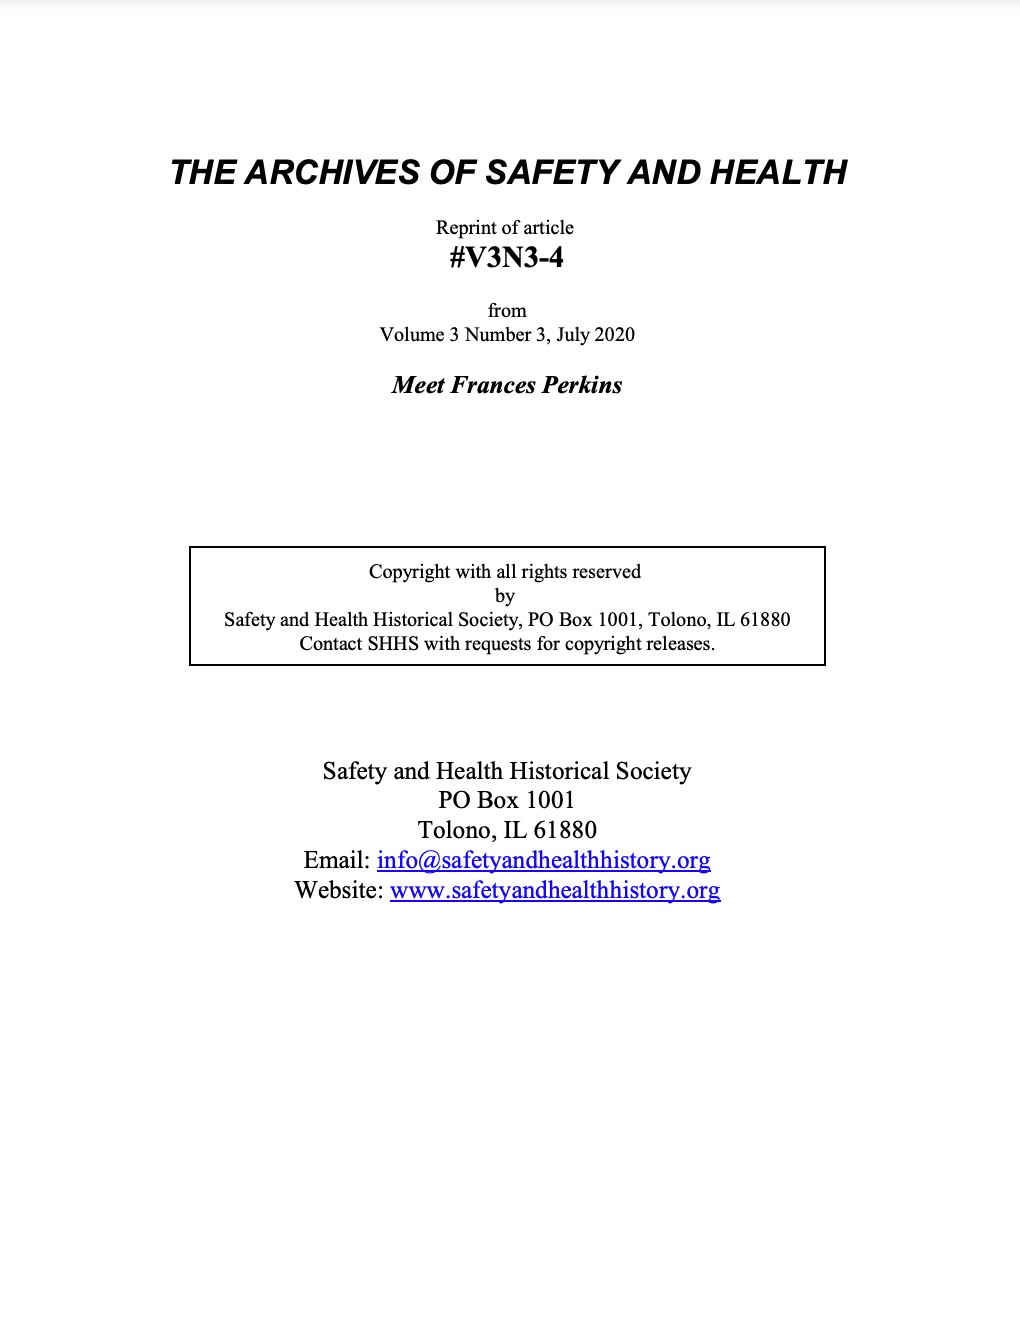 Full Article V3N3-4 of THE ARCHIVES OF SAFETY AND HEALTH - Meet Frances Perkins